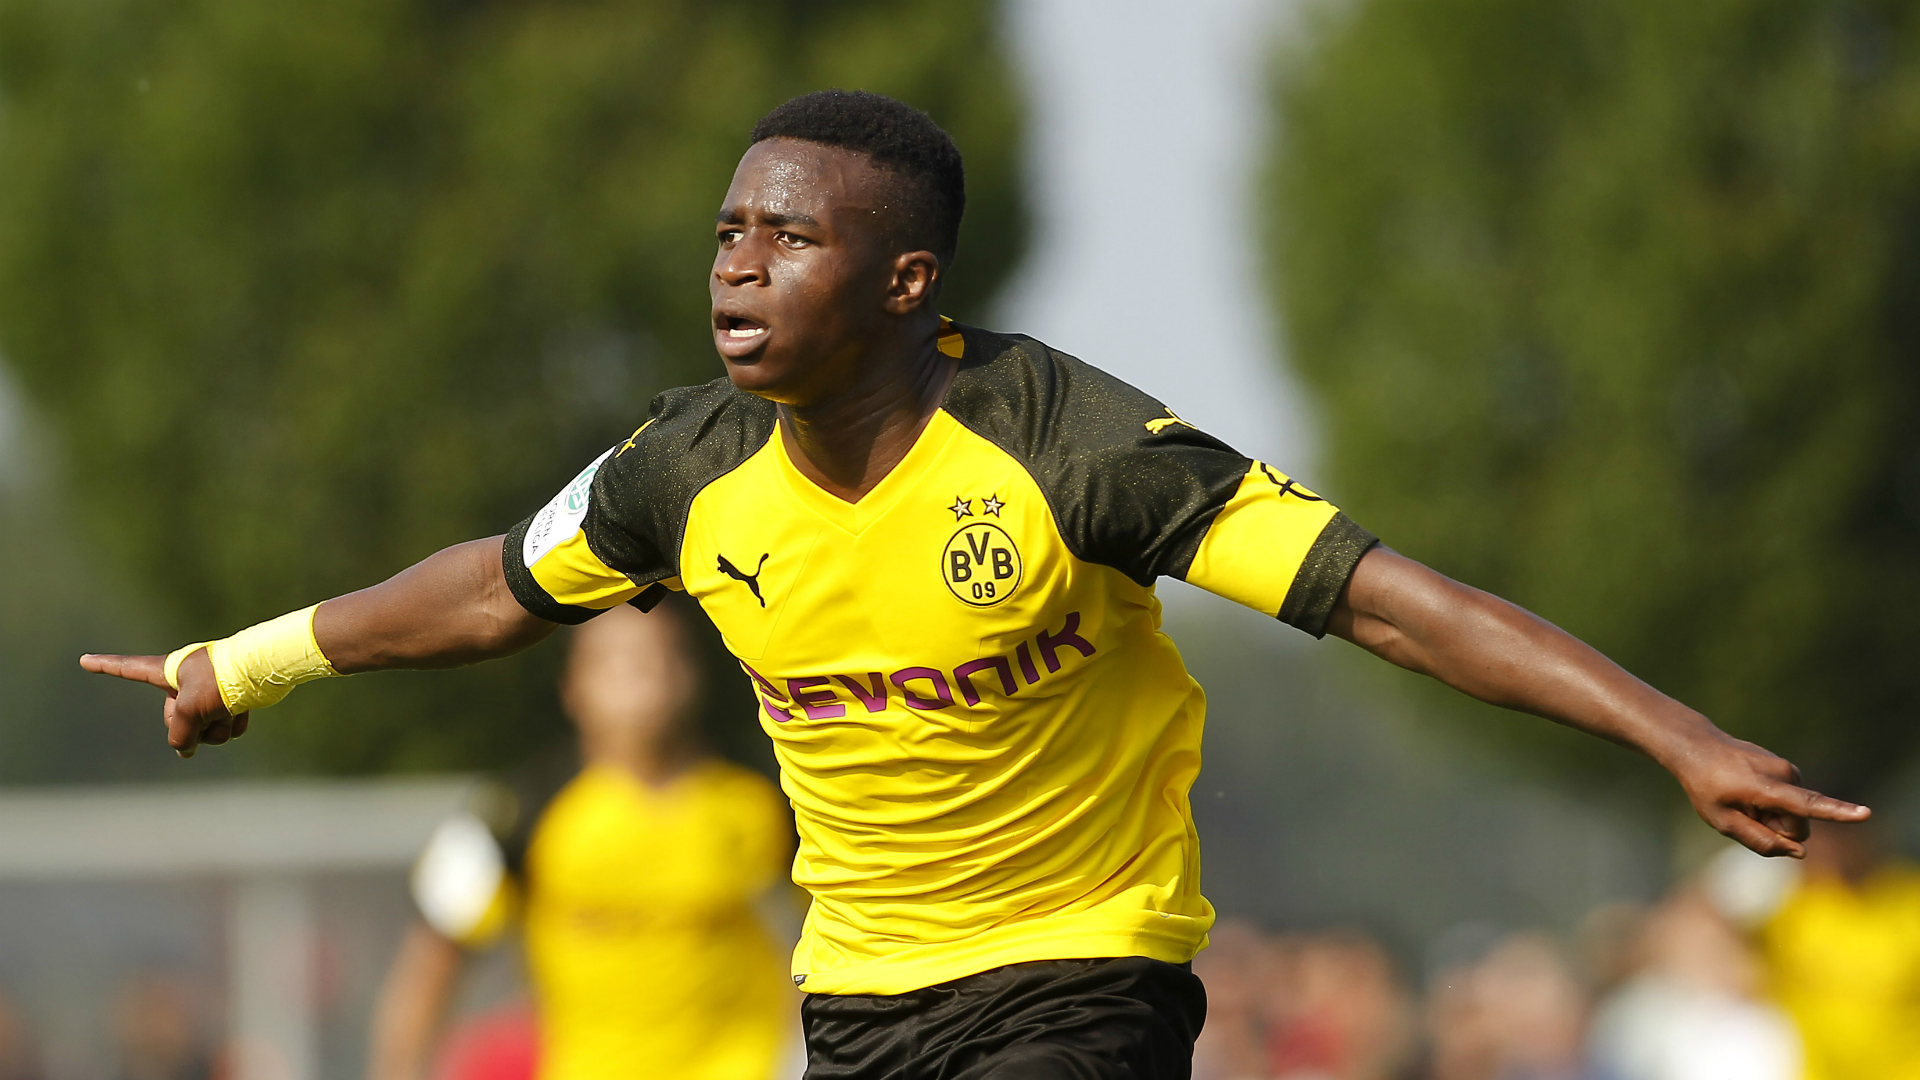 Haaland says Dortmund boy wonder Moukoko is 'a lot better than I was'